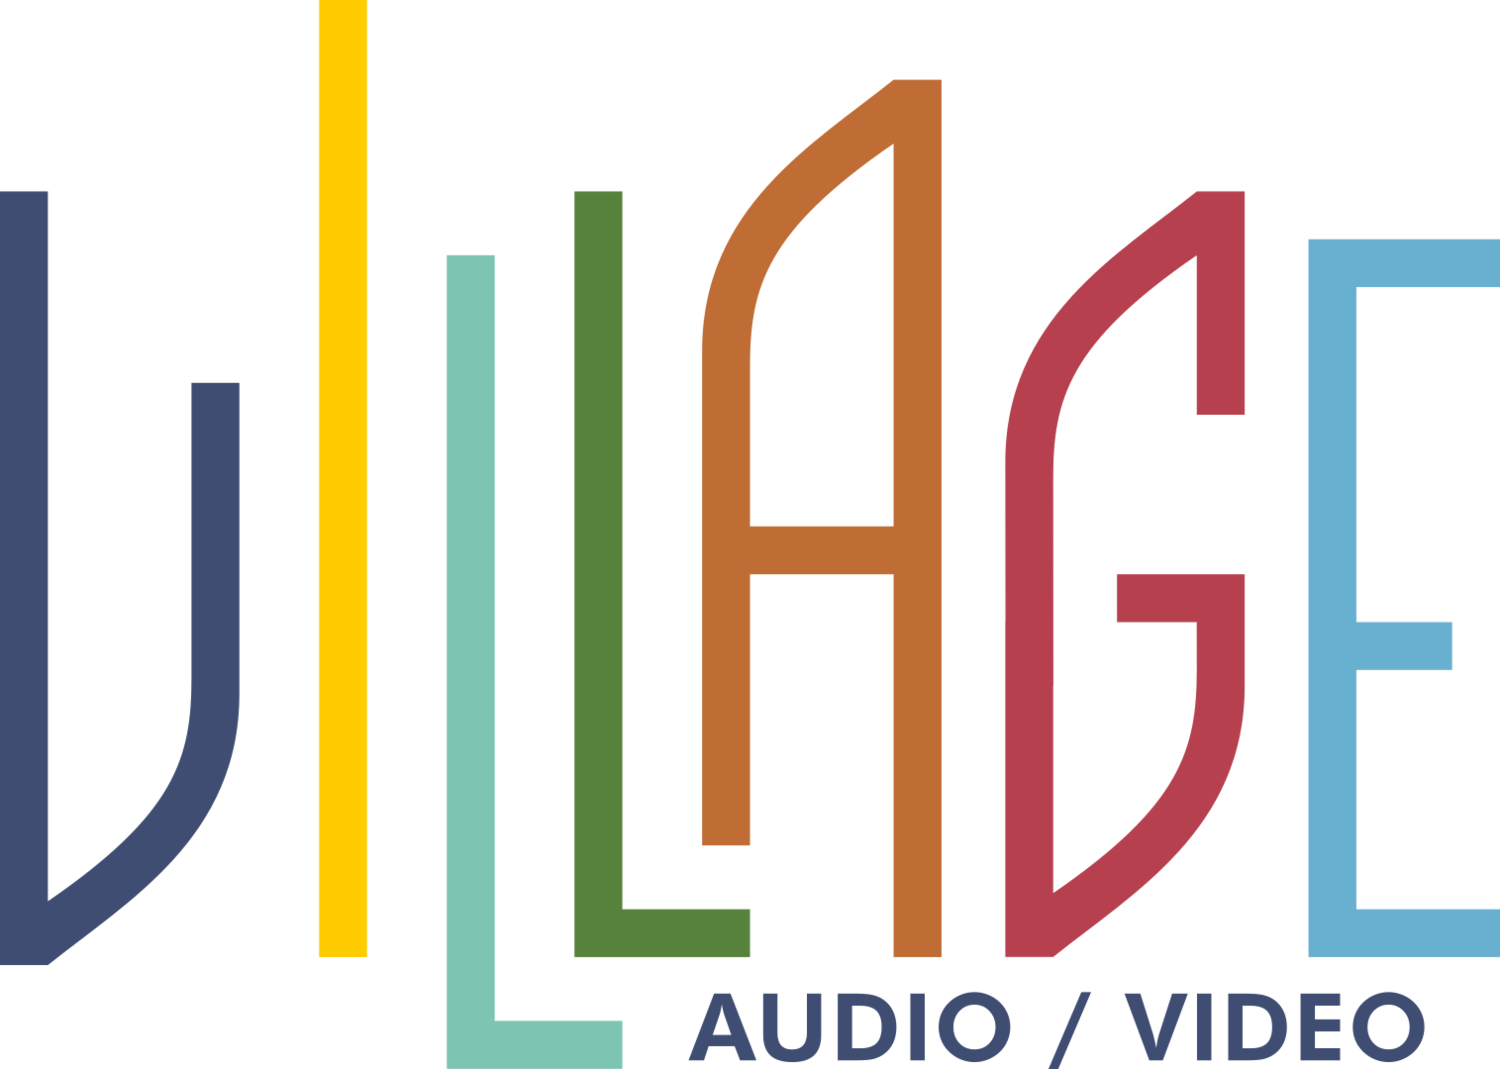 Village Audio/Video